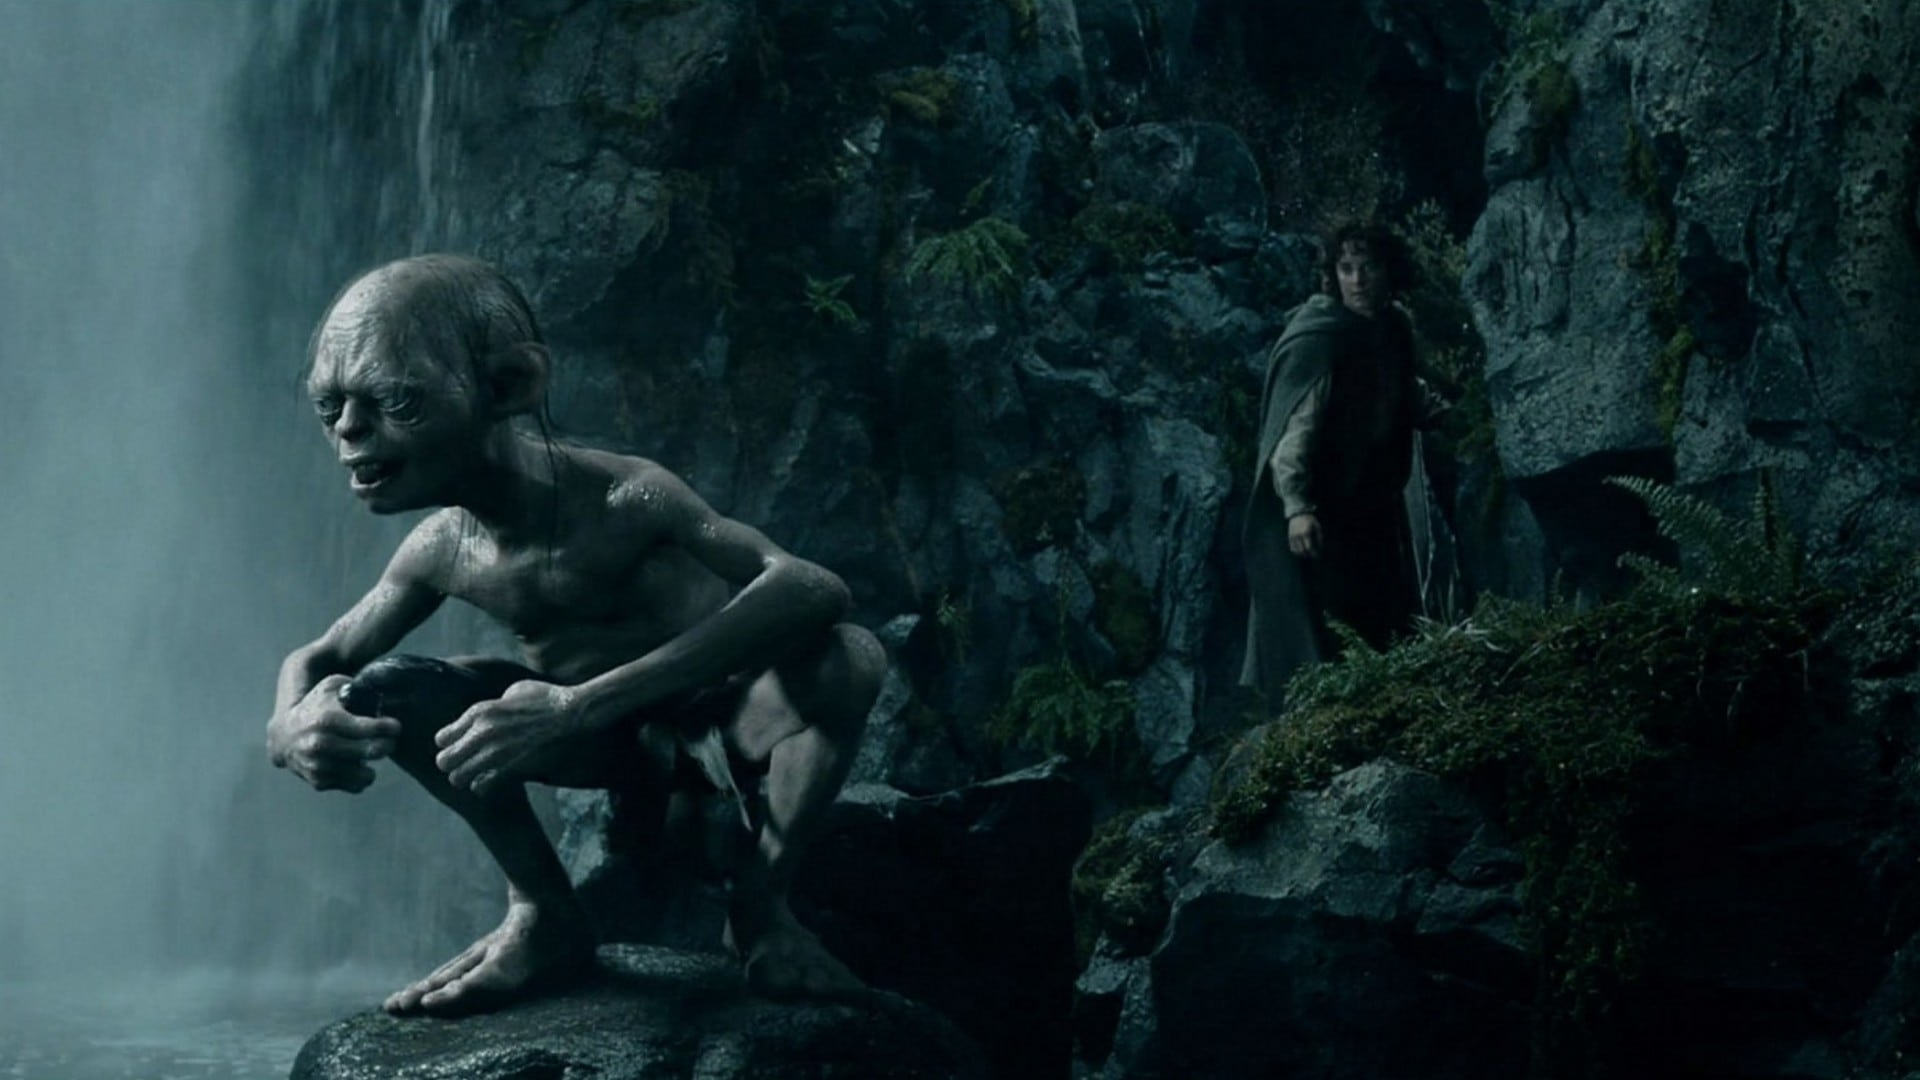 1920x1080 Gollum The Lord Of The Rings 1080p Laptop Full Hd